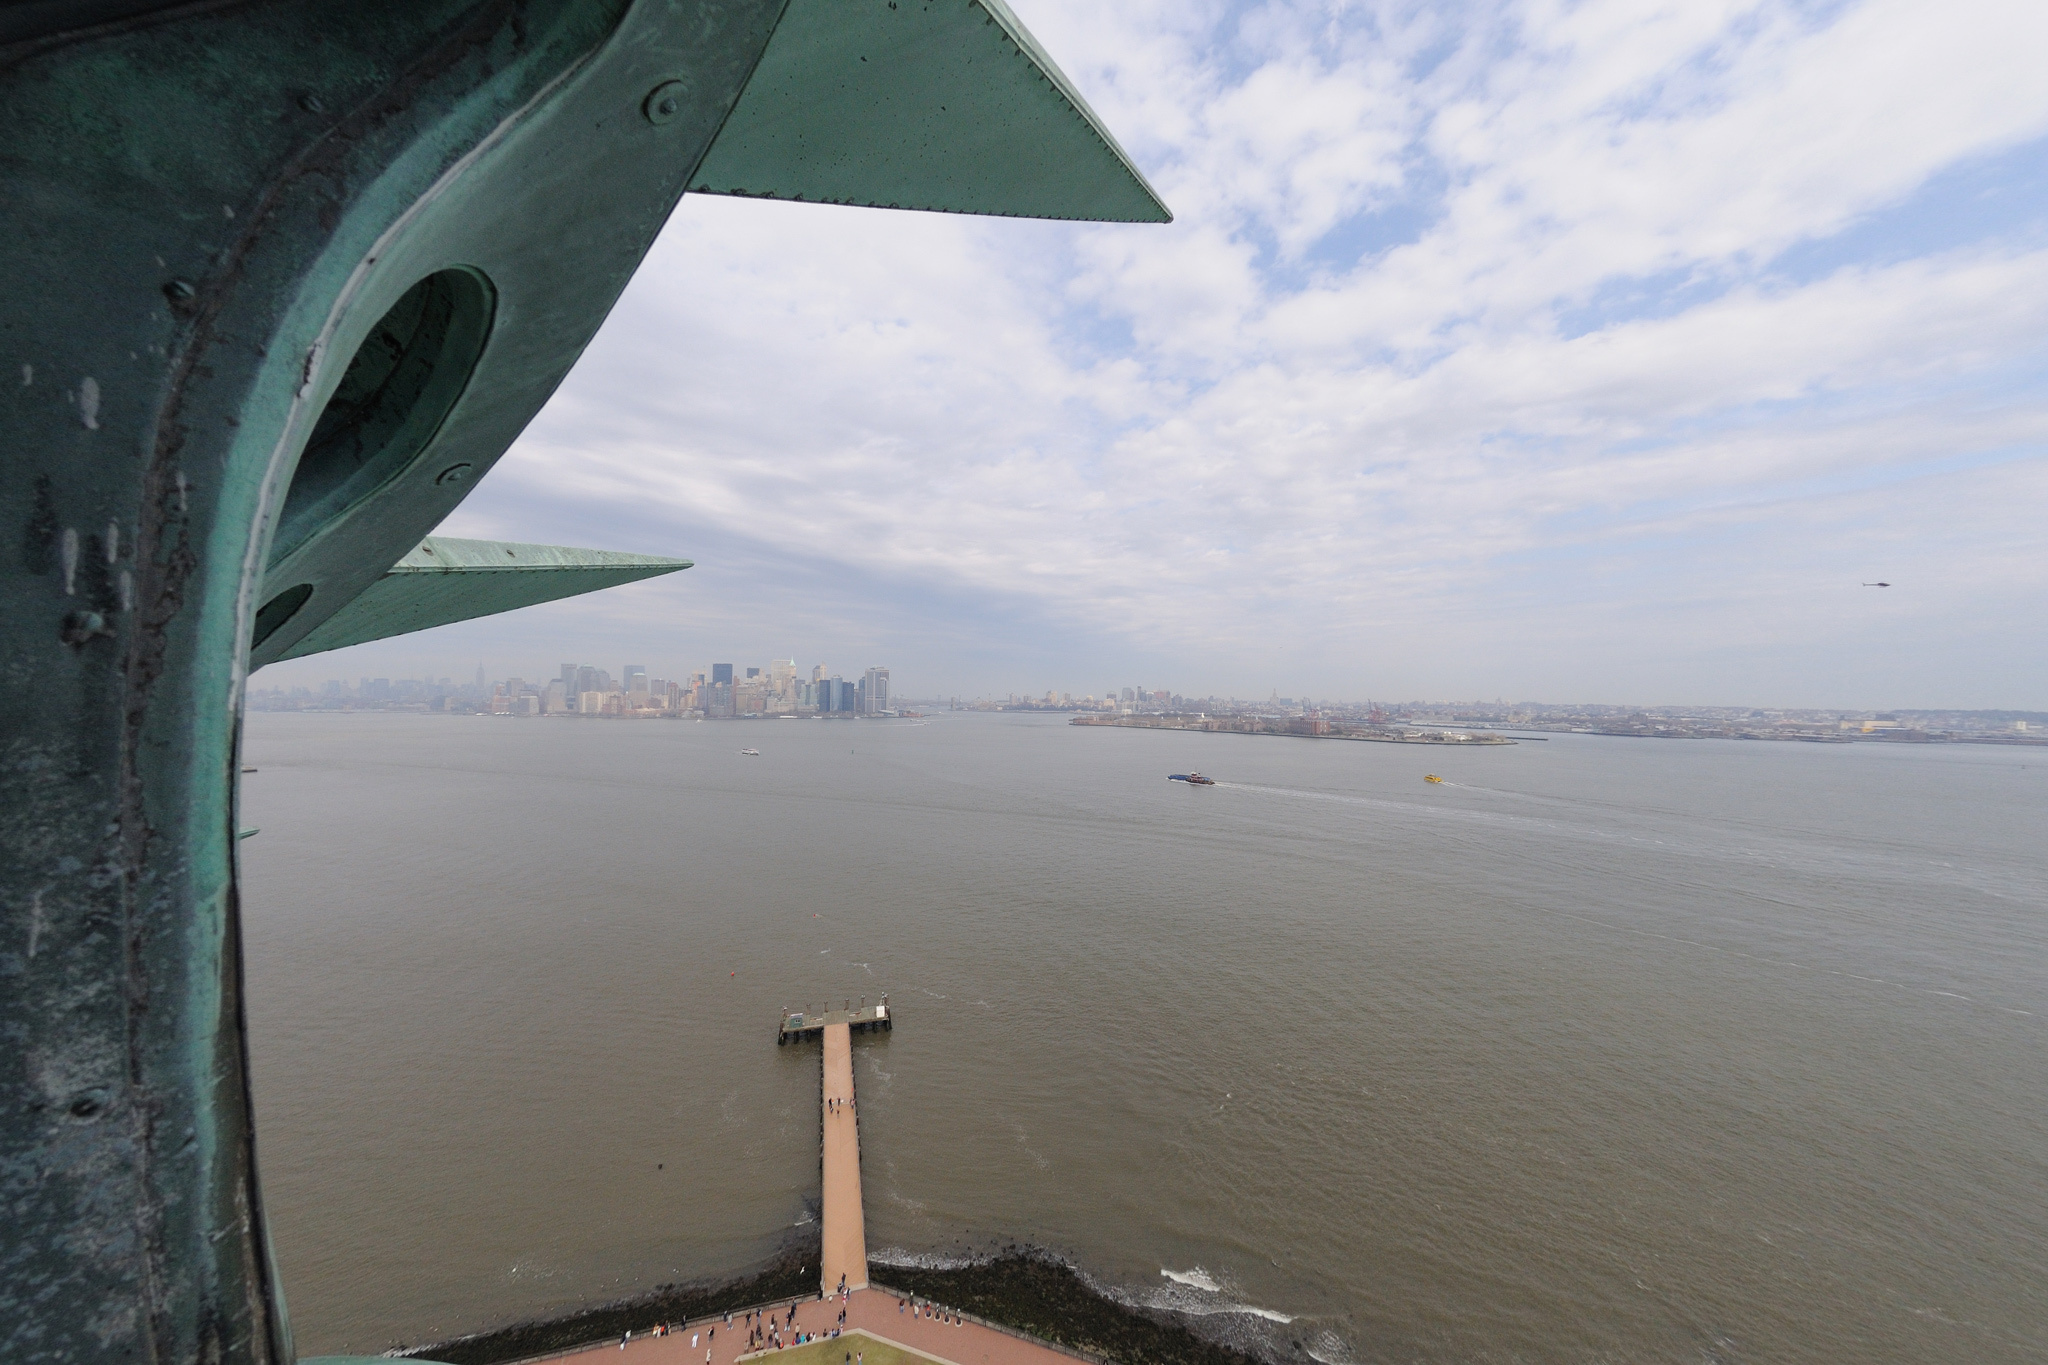 View from the crown of the Statue of Liberty